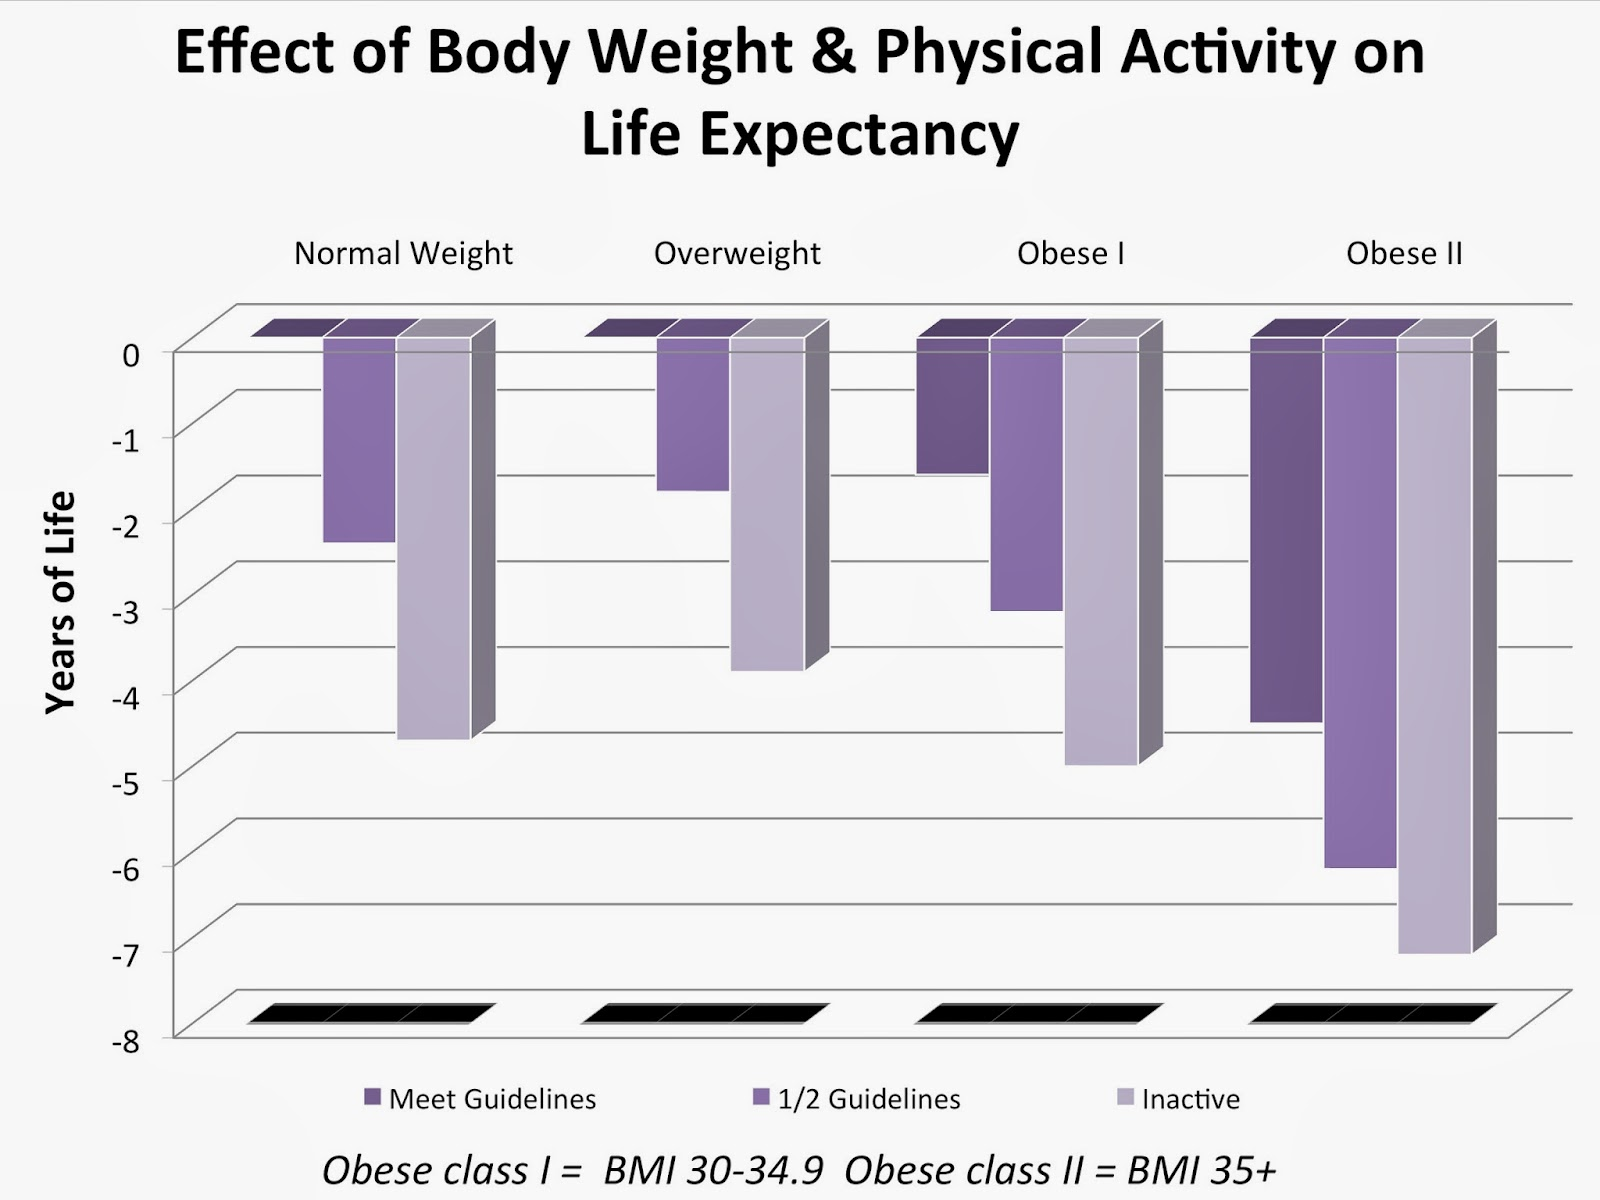 body weight and life expectancy